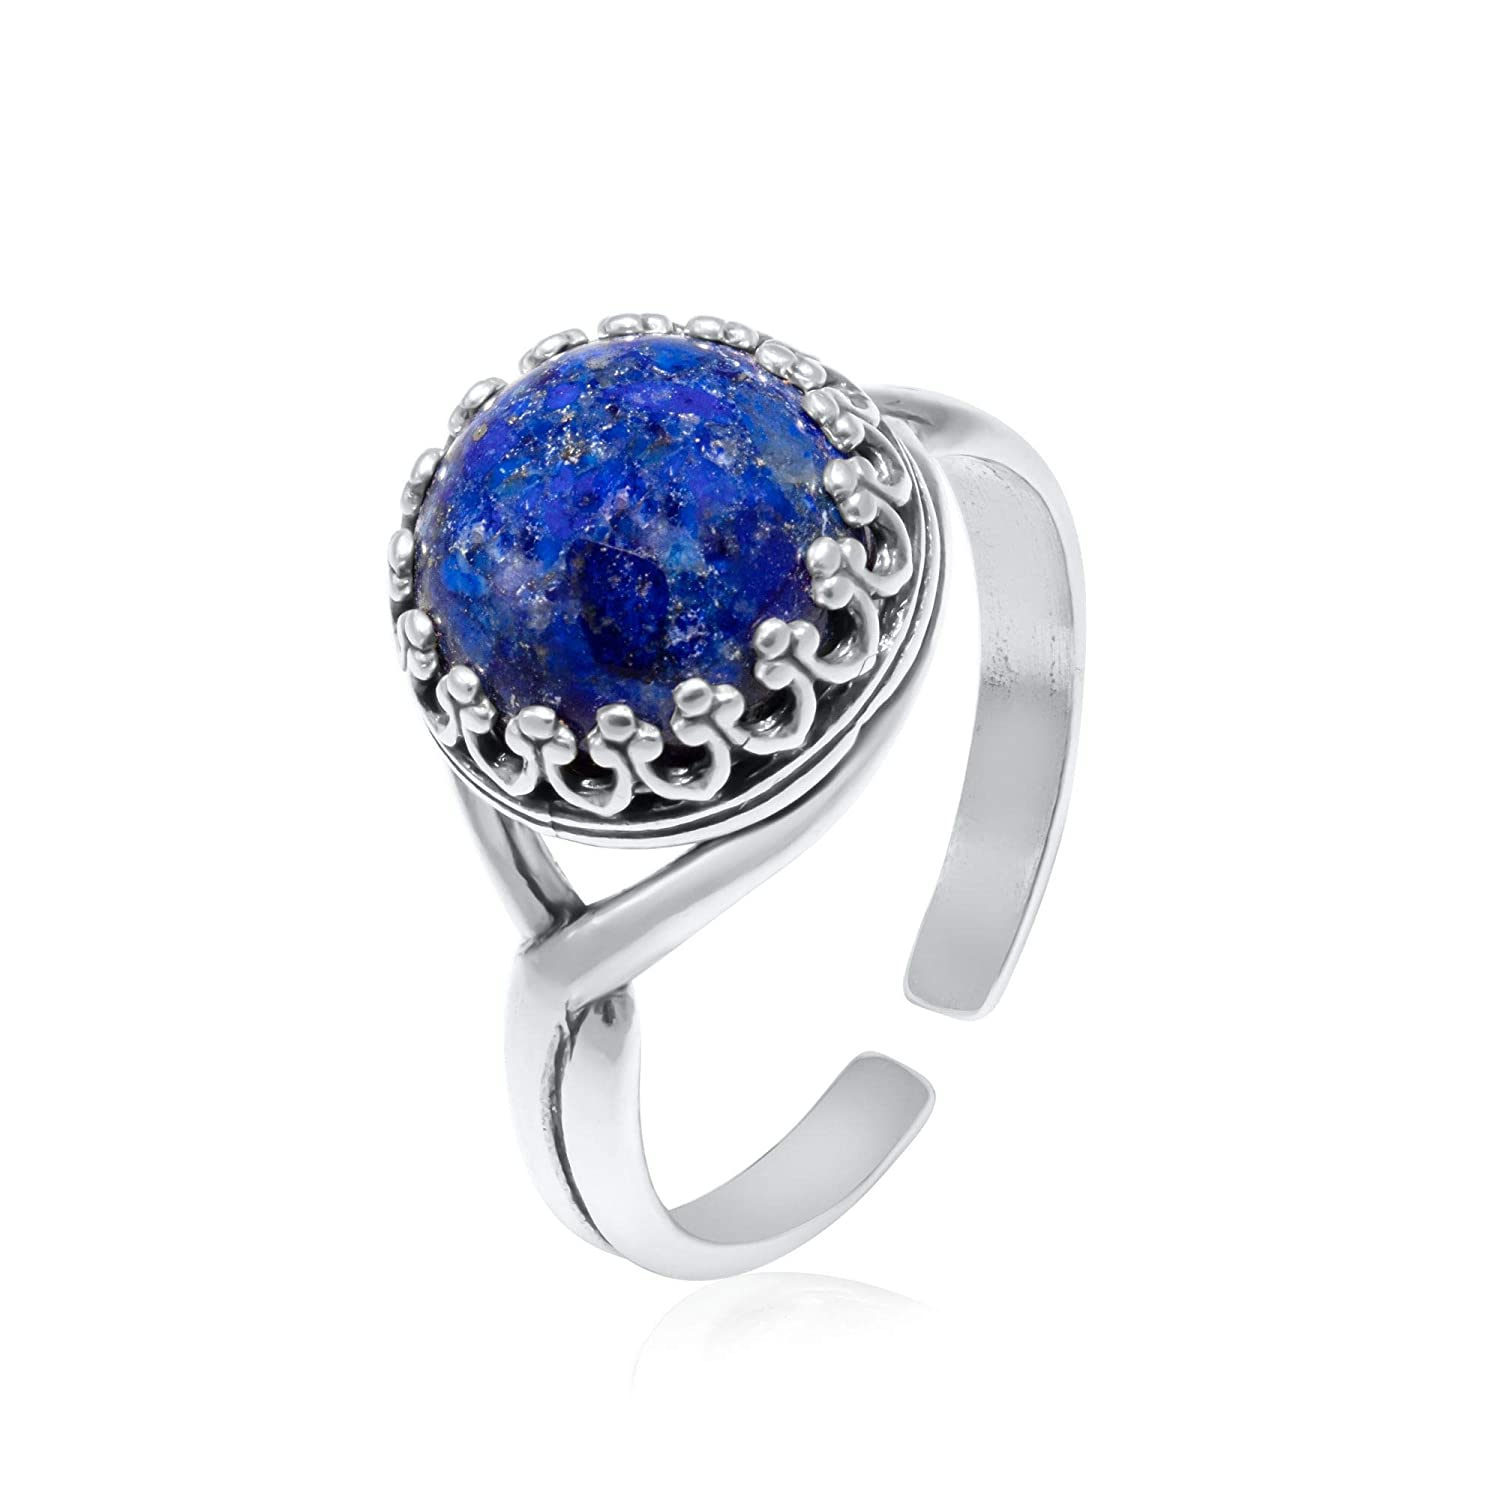 Max 61% OFF 925 Sterling Silver Popular popular Natural Lapis Lazuli Vintage Style Ring Le -